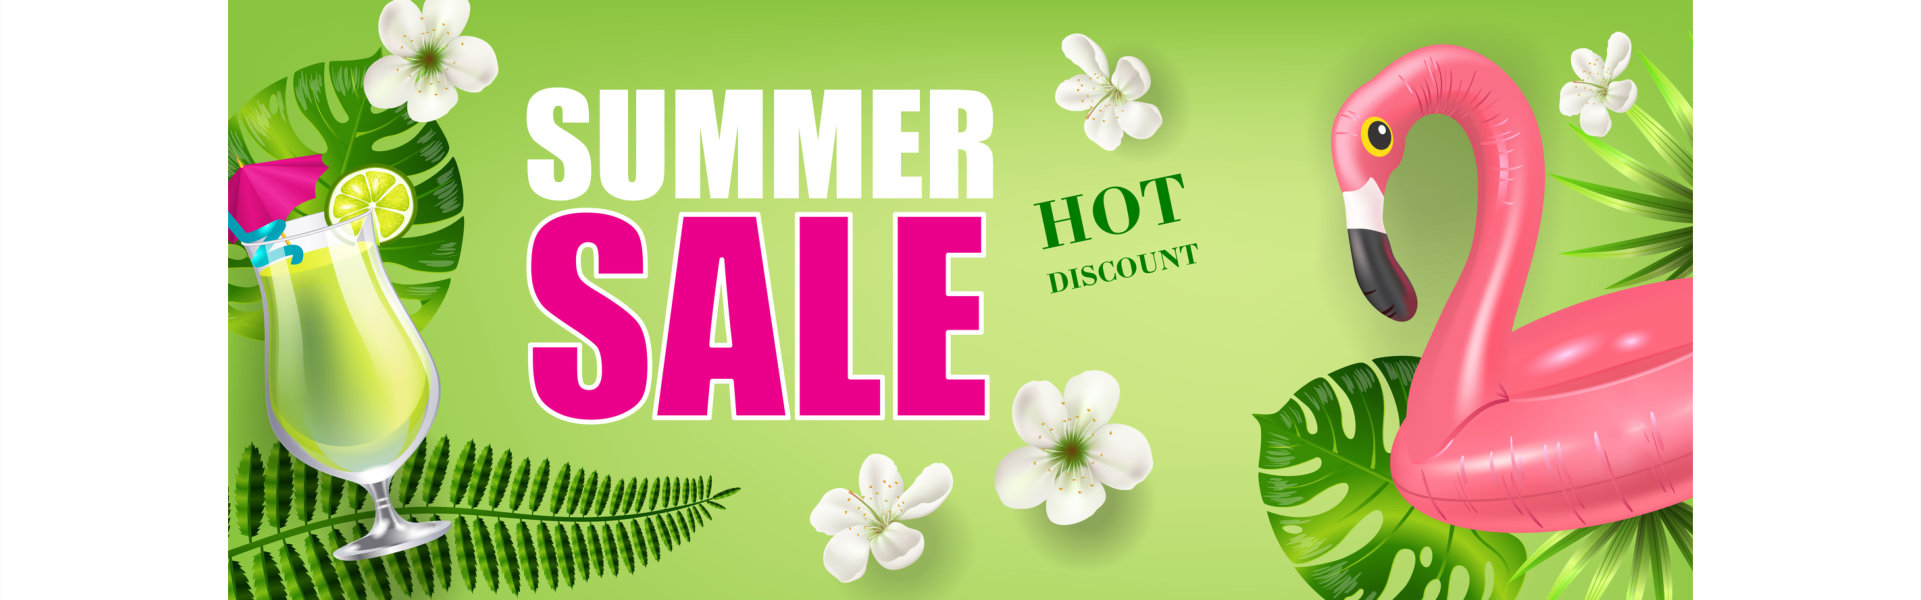 Zur Kategorie Summer Sale %